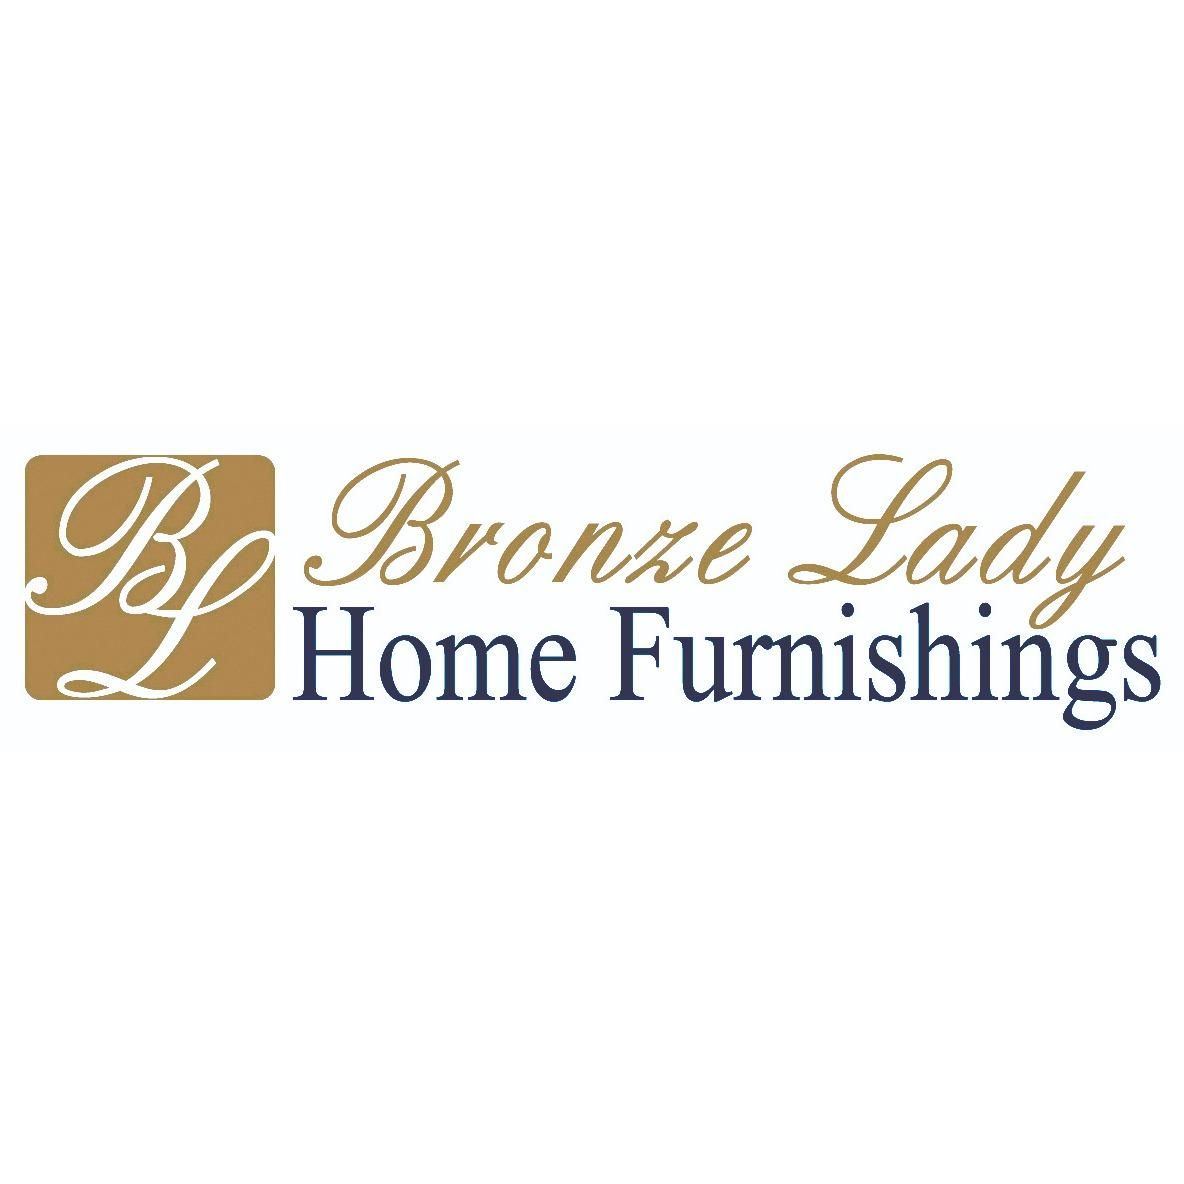 Bronze Lady Home Furnishings Inc.